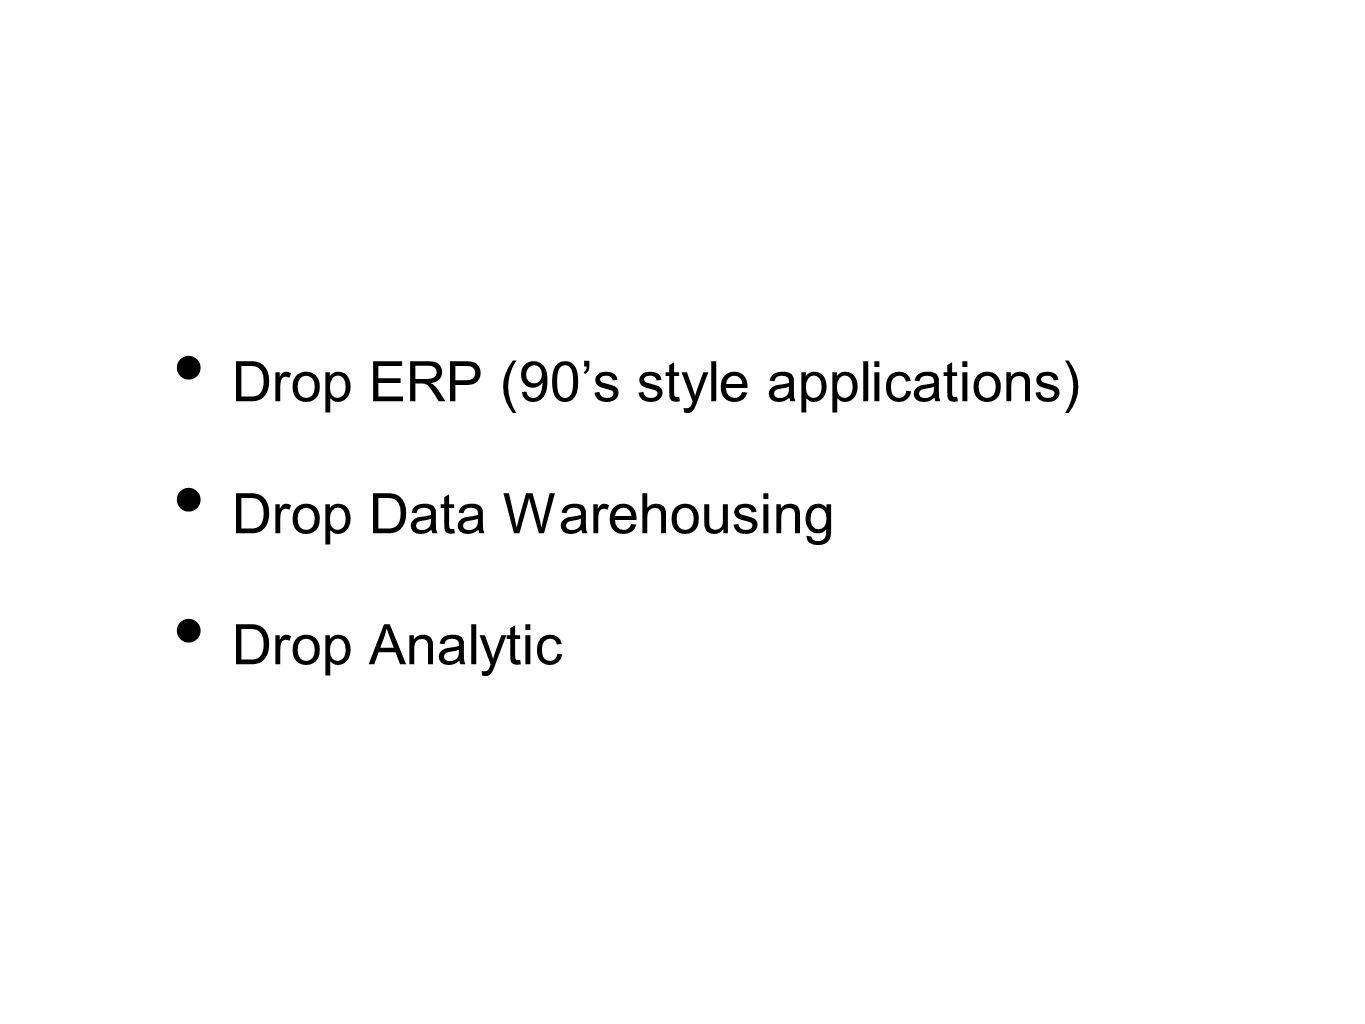 Drop ERP (90s style applications) Drop Data Warehousing Drop Analytic